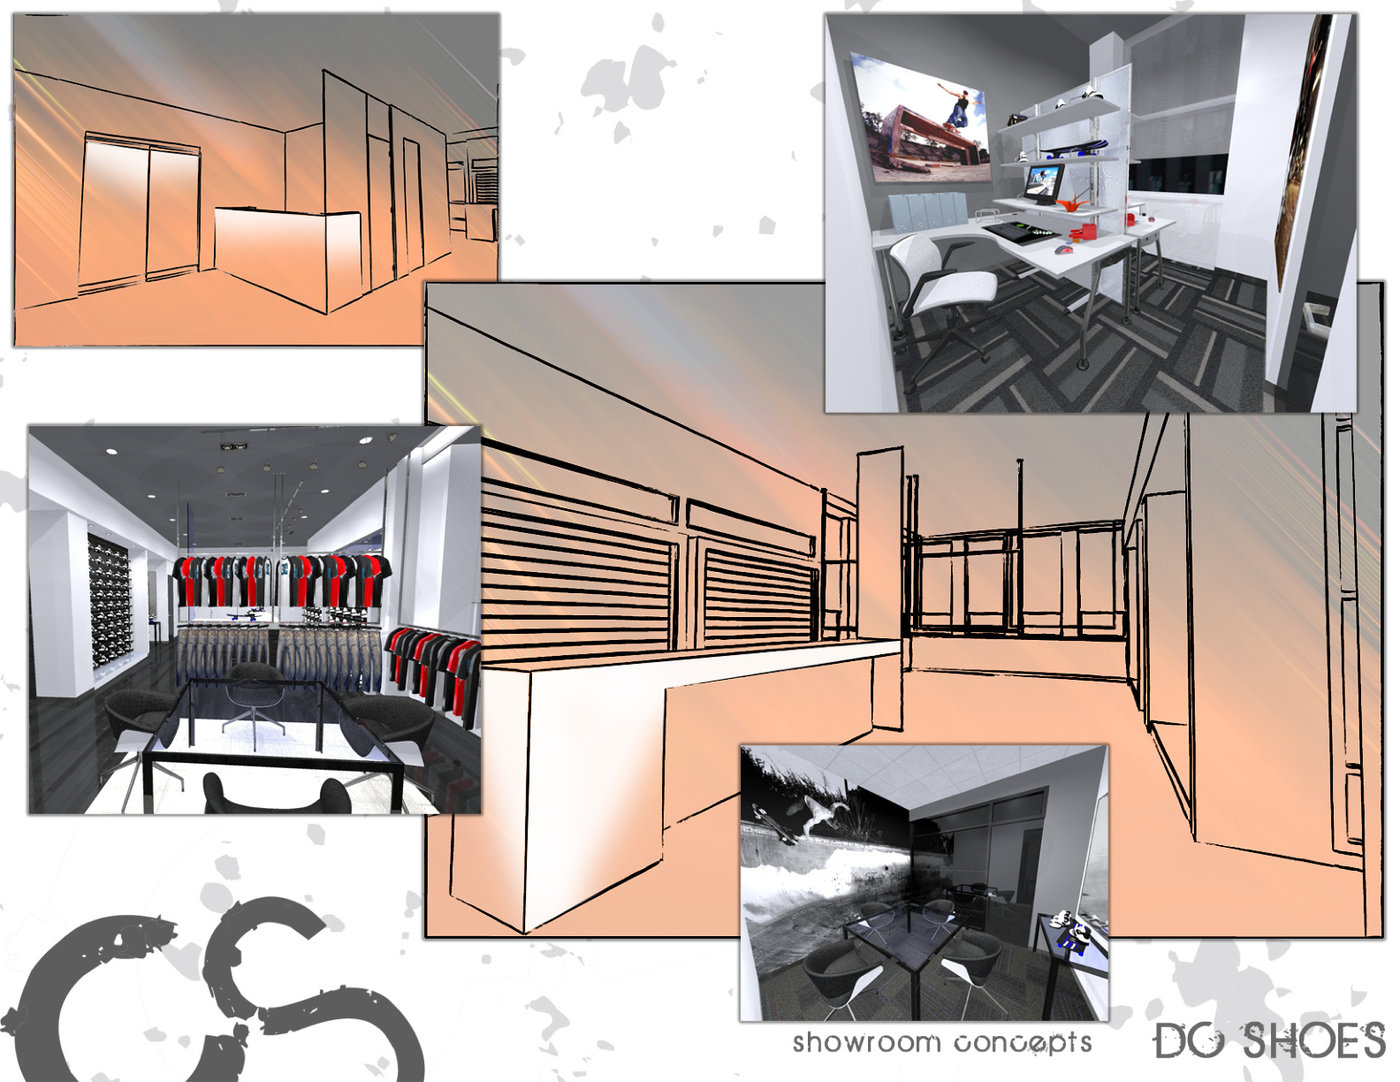 DC SHOES - SHOWROOM CONCEPT by Chris